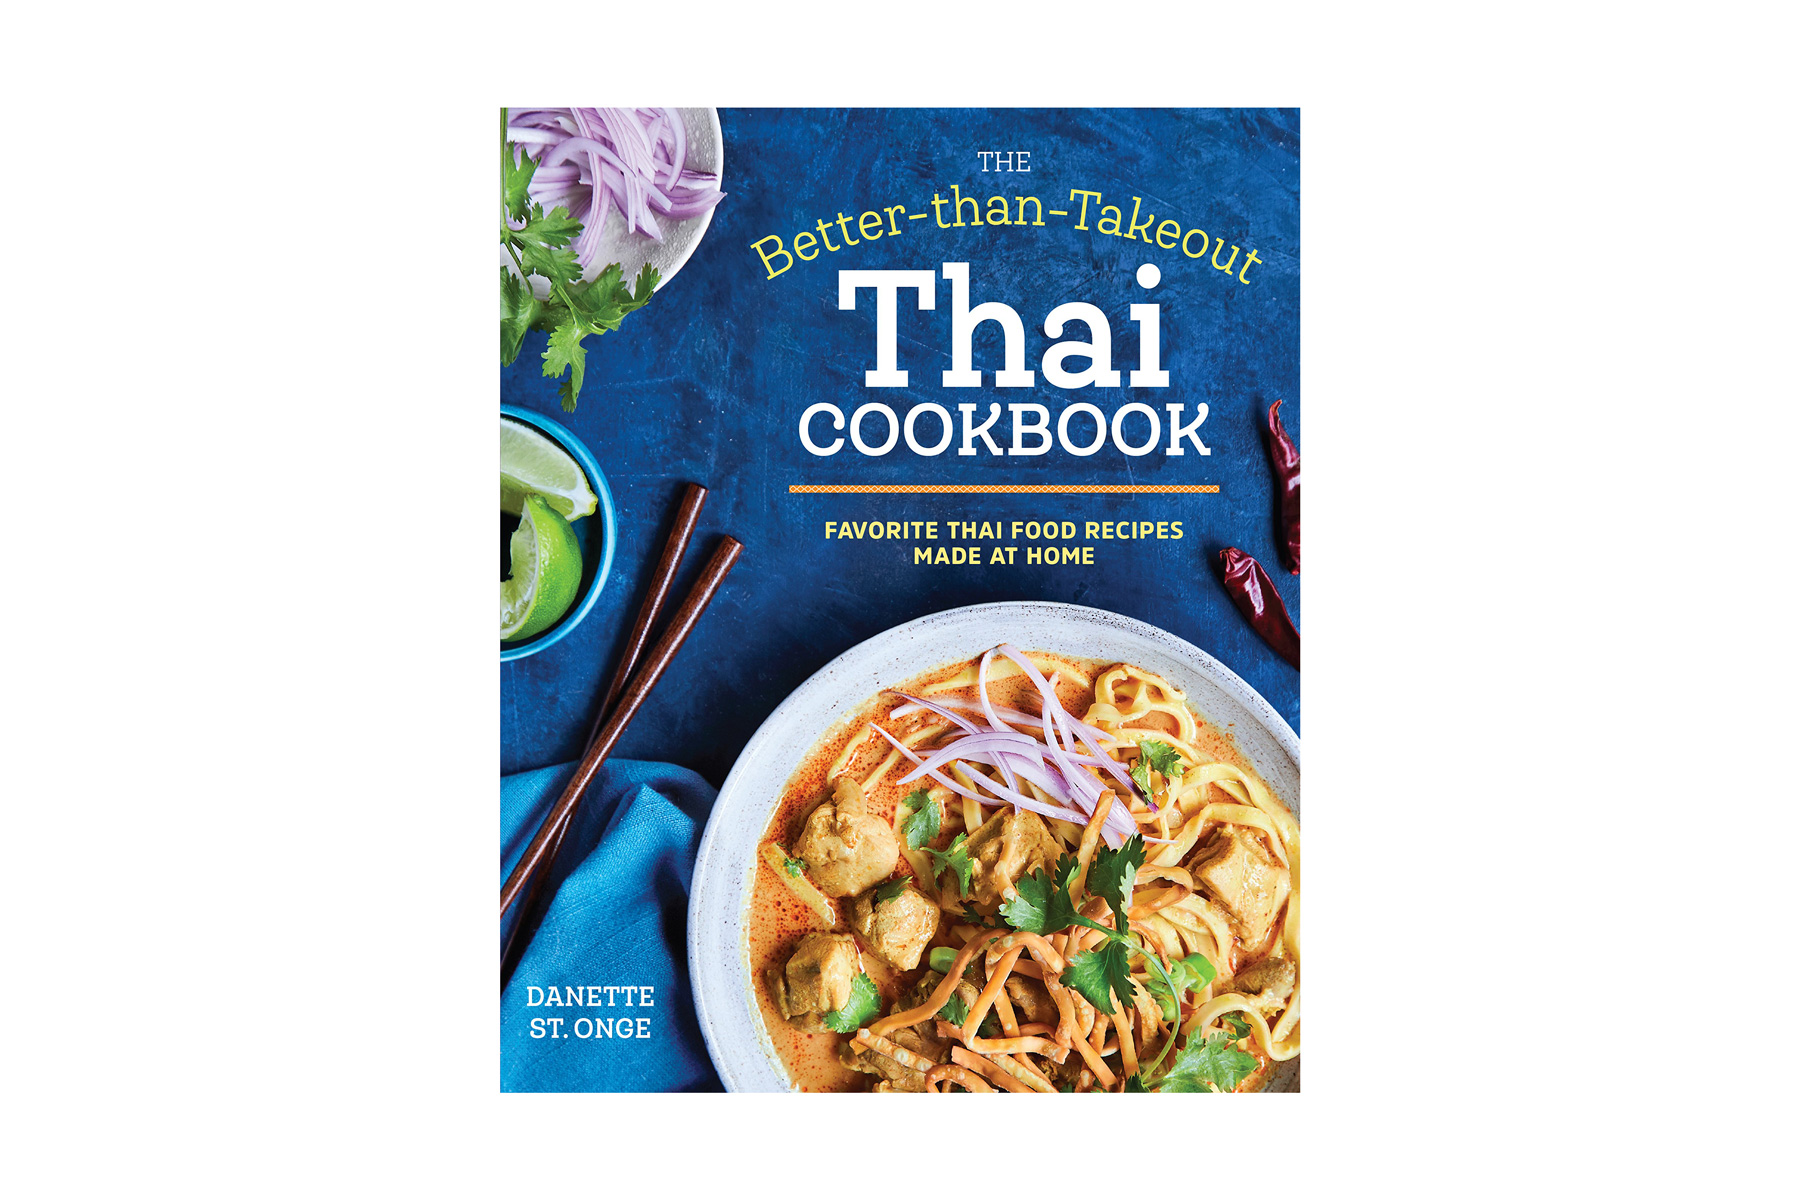 The Better Than Takeout Thai Cookbook by Danette St. Onge